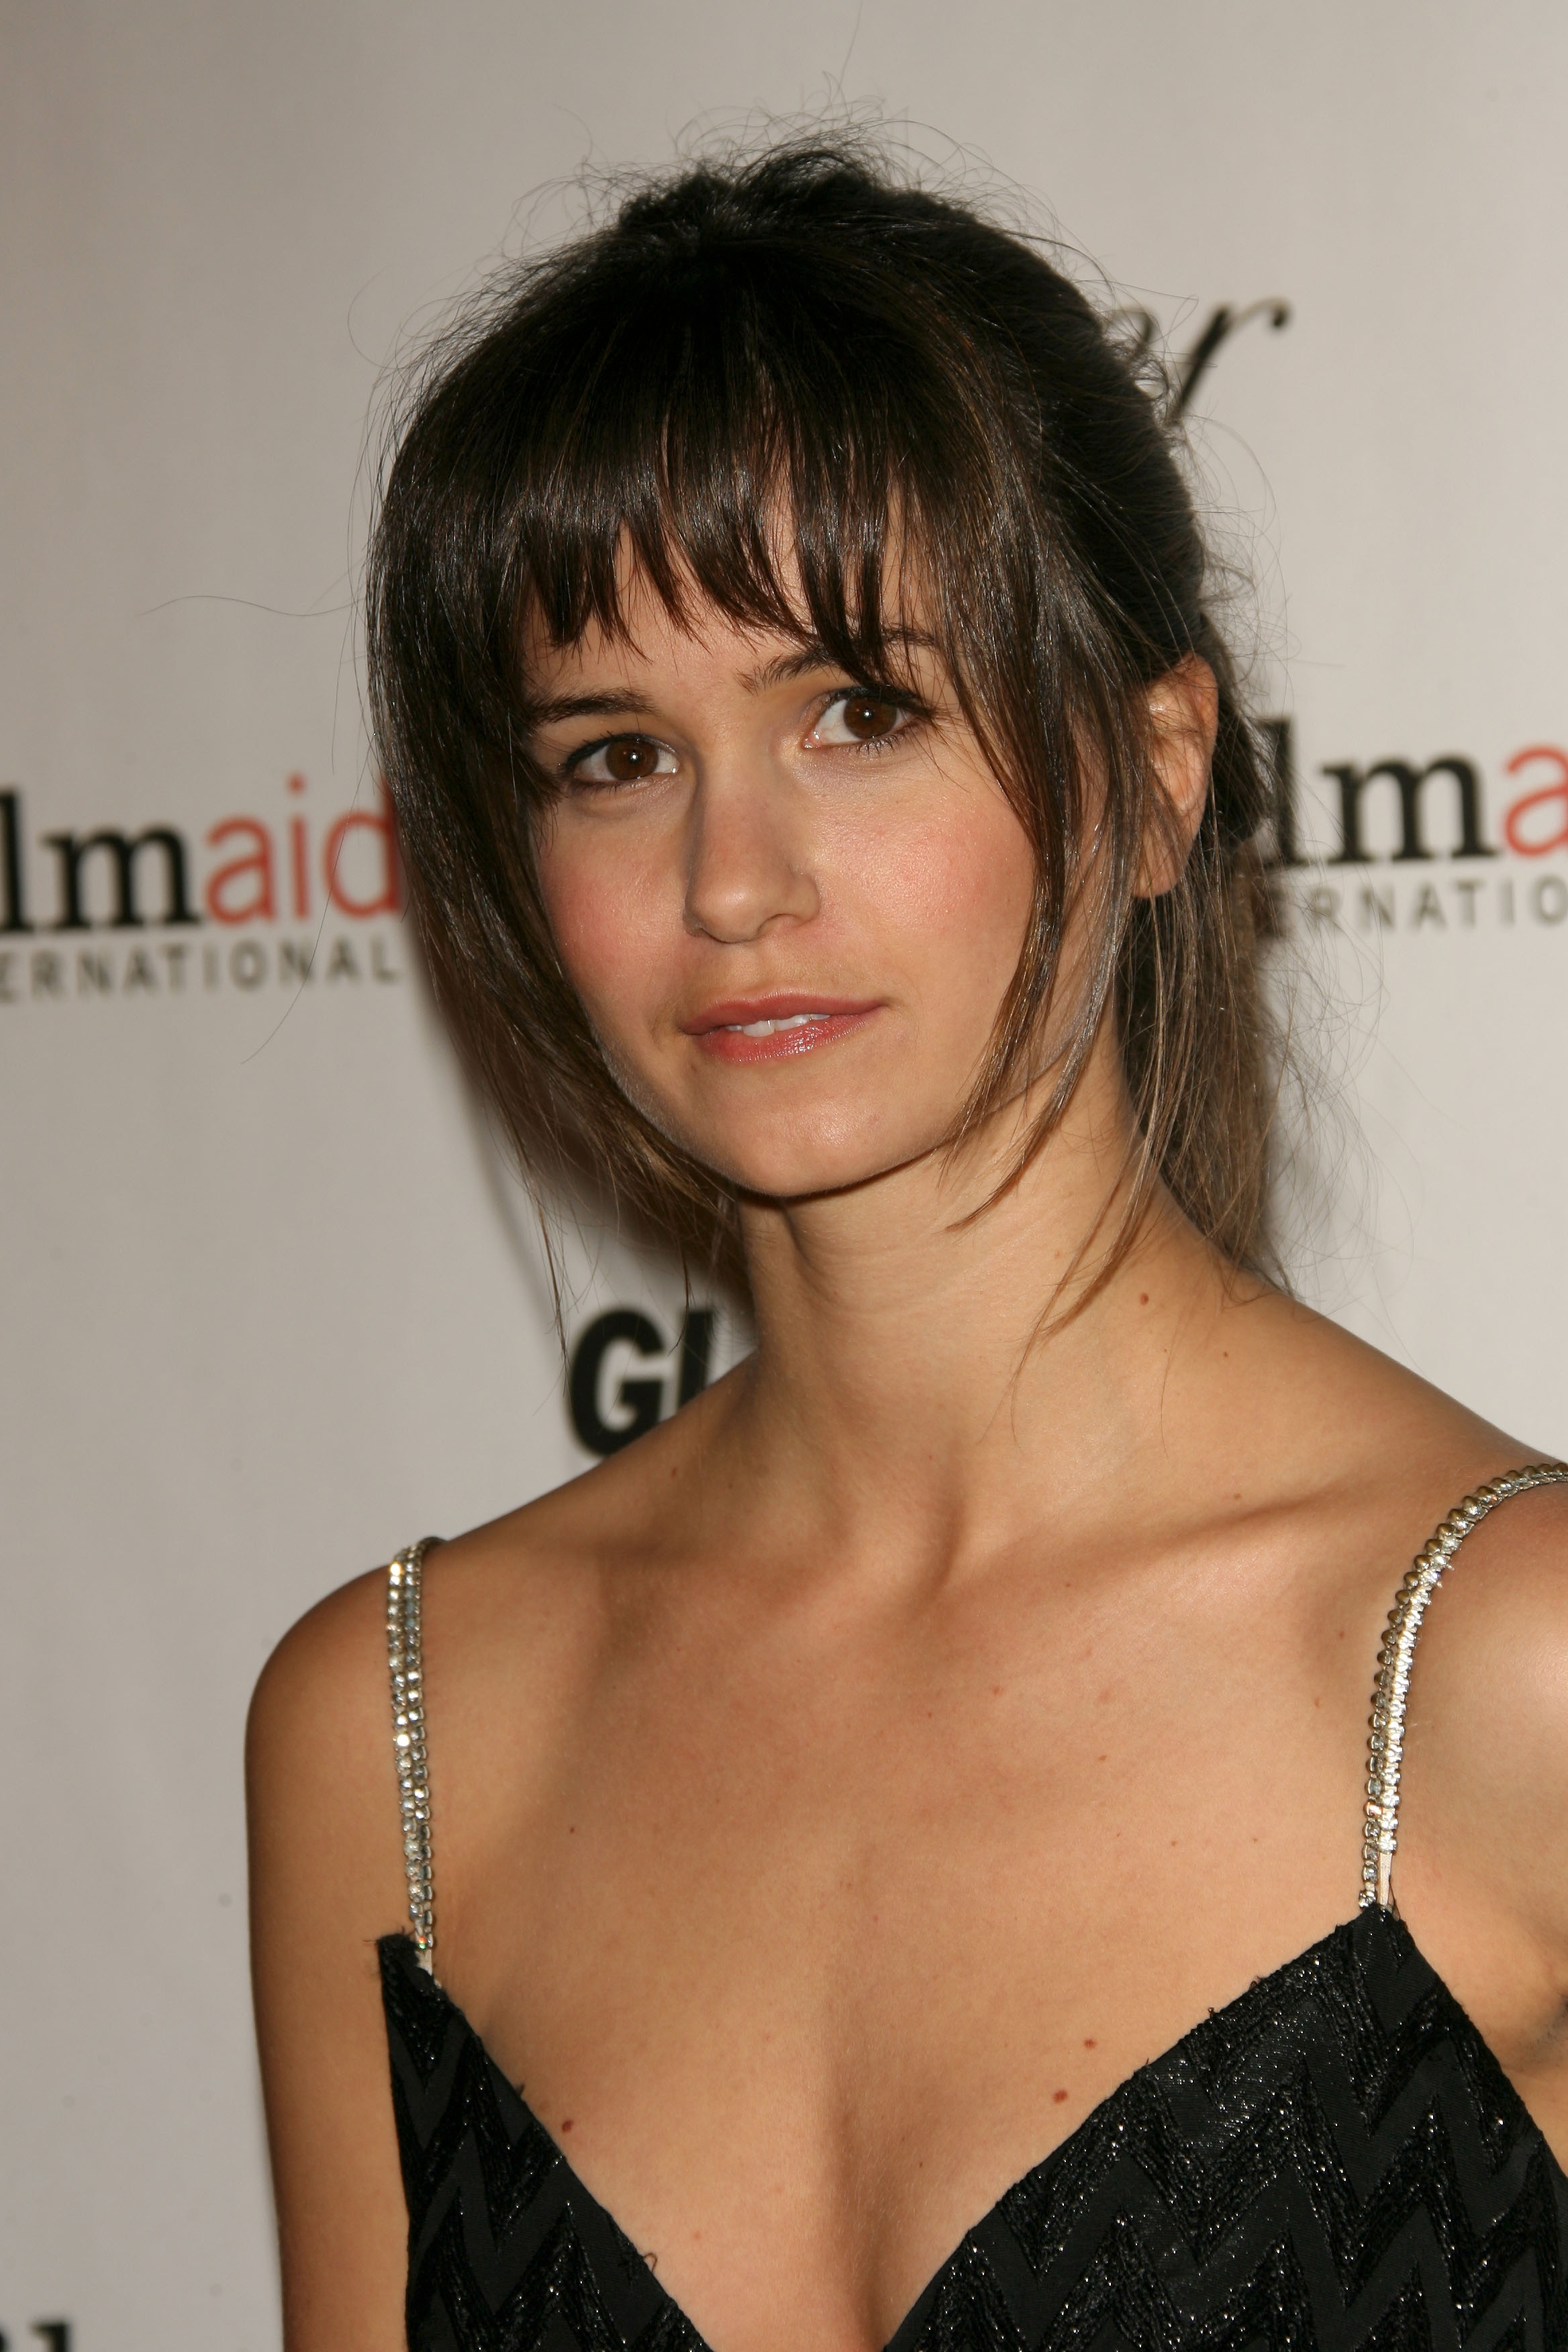 Katherine Waterson. Photo by Jim Smeal/BEI/BEI/Shutterstock